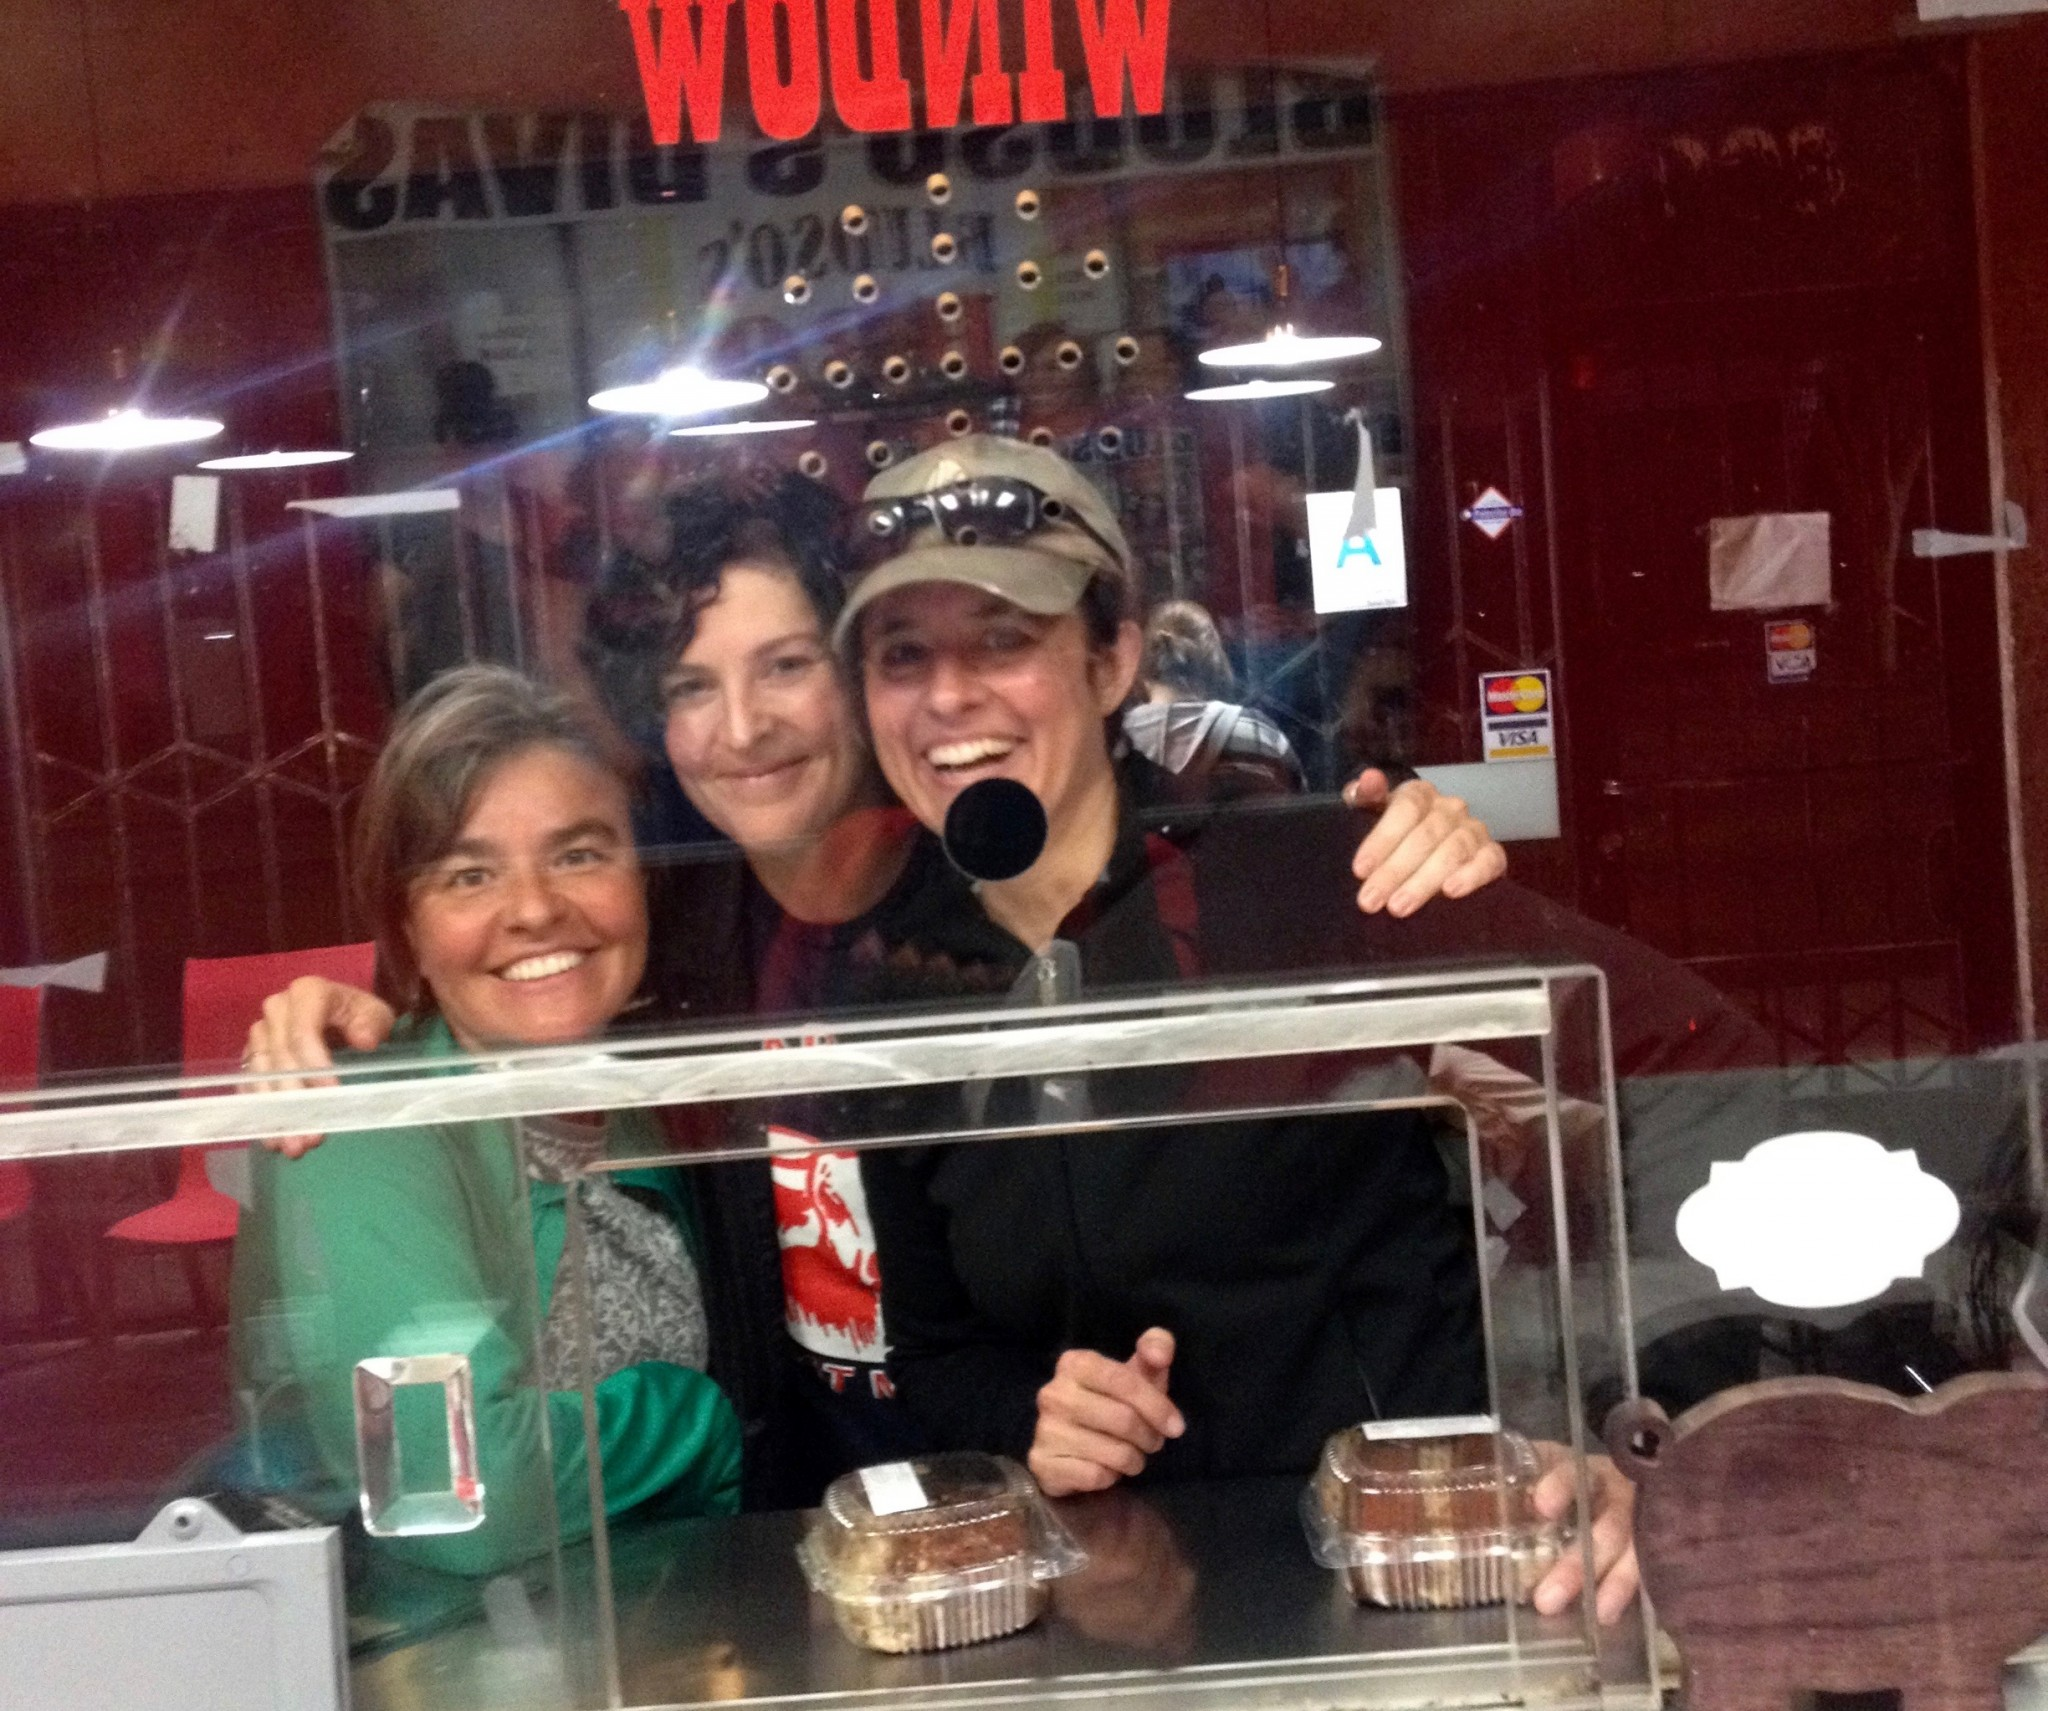 A kind lady working the counter at Bludso's took this shot of us with the German chocolate cake we got to chase our post-run BBQ rib tips.